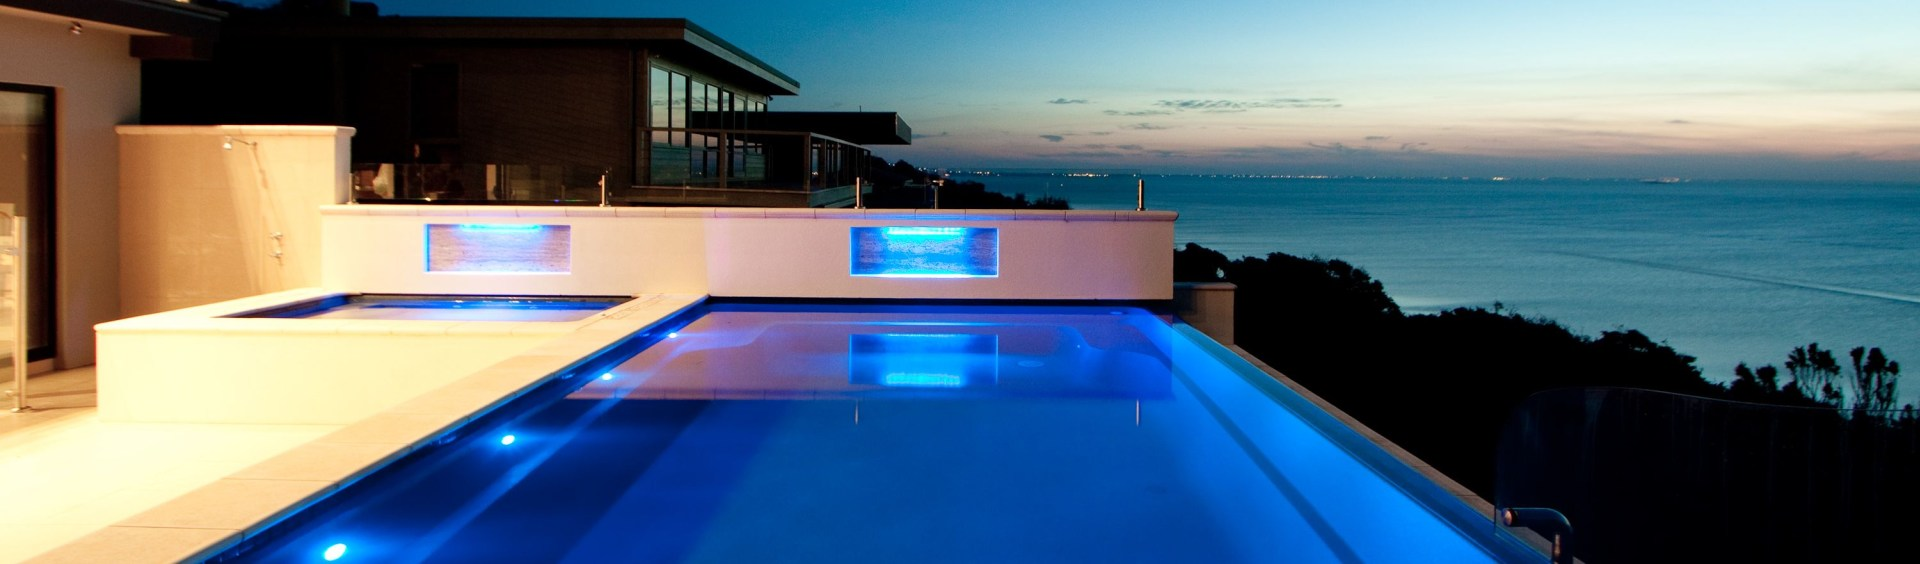 The advantages of installing an infinity pool local - Small infinity pool ...